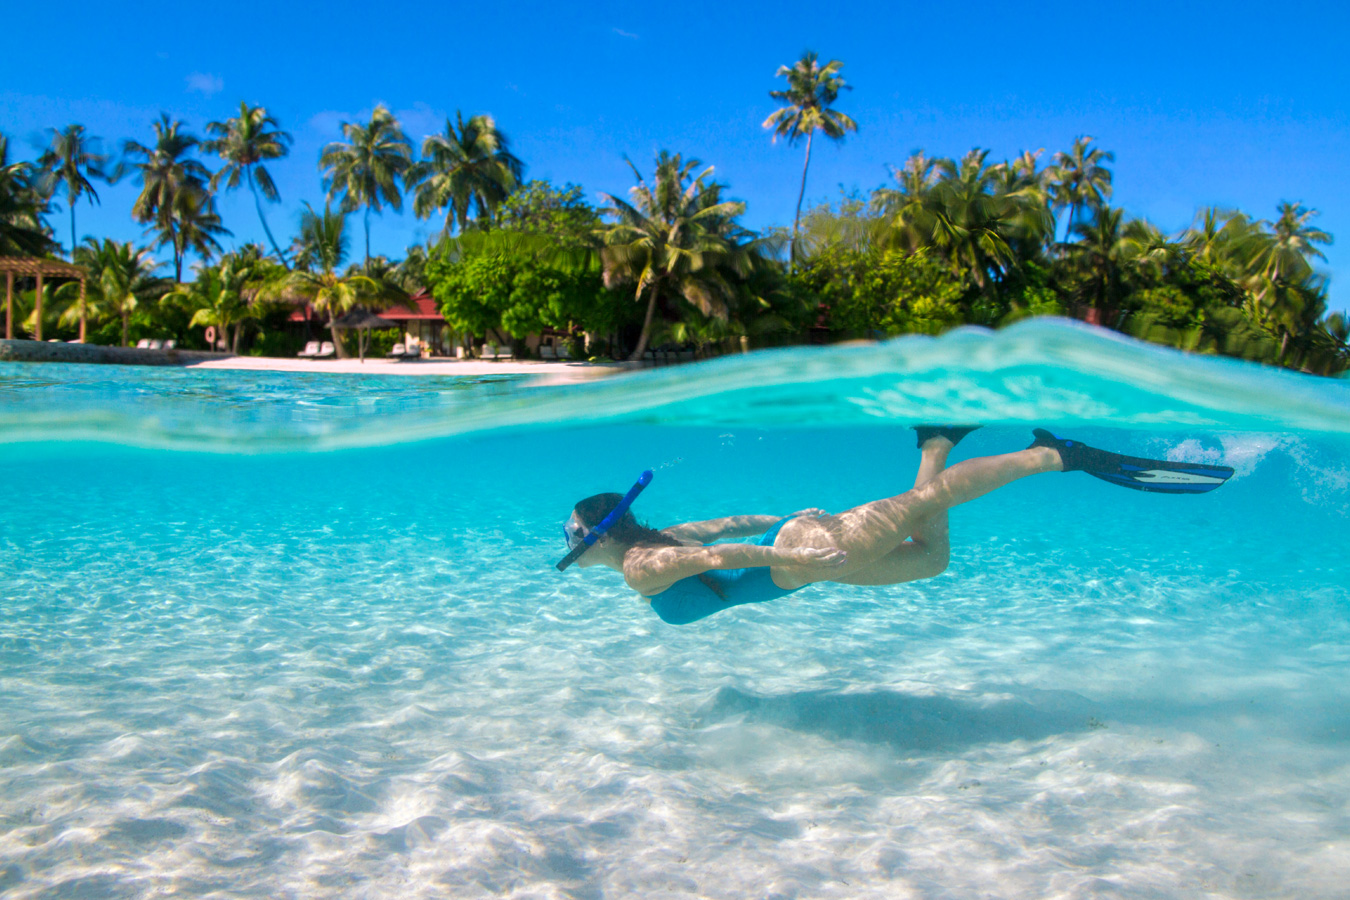 Snorkelling in the Maldives Islands image | Kurumba Maldives Lagoon